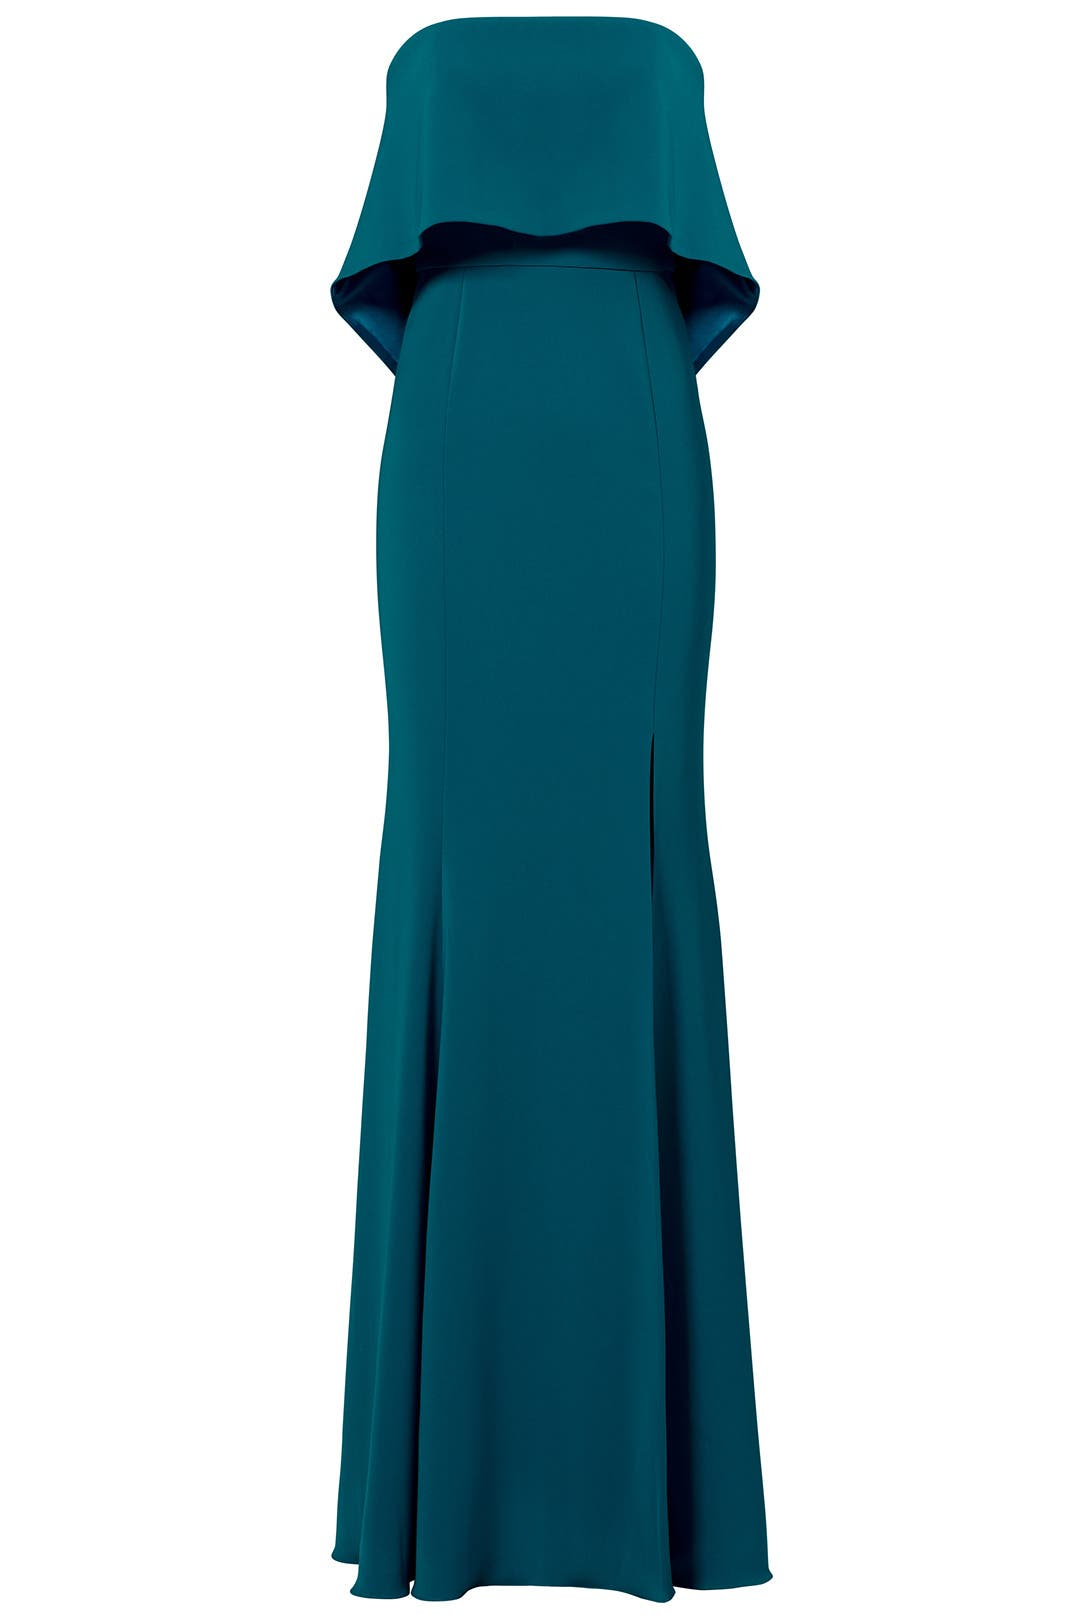 Teal Clarke Gown by Jay Godfrey for $80 - $90 | Rent the Runway